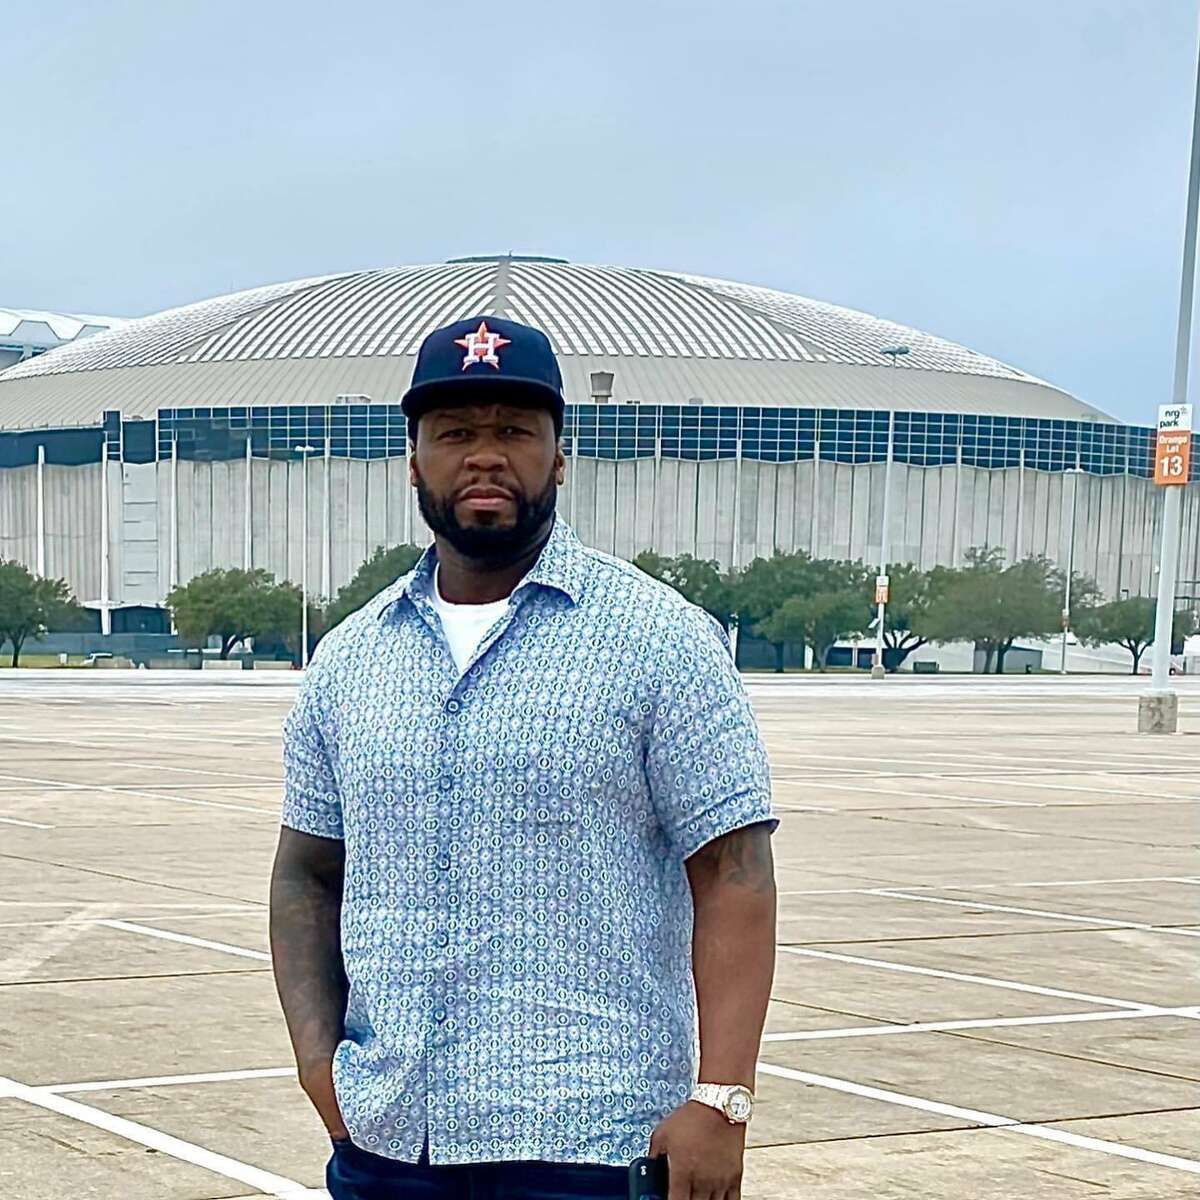 Rapper 50 Cent poses in front of Reliant after announcing on social media he's moved to Houston.